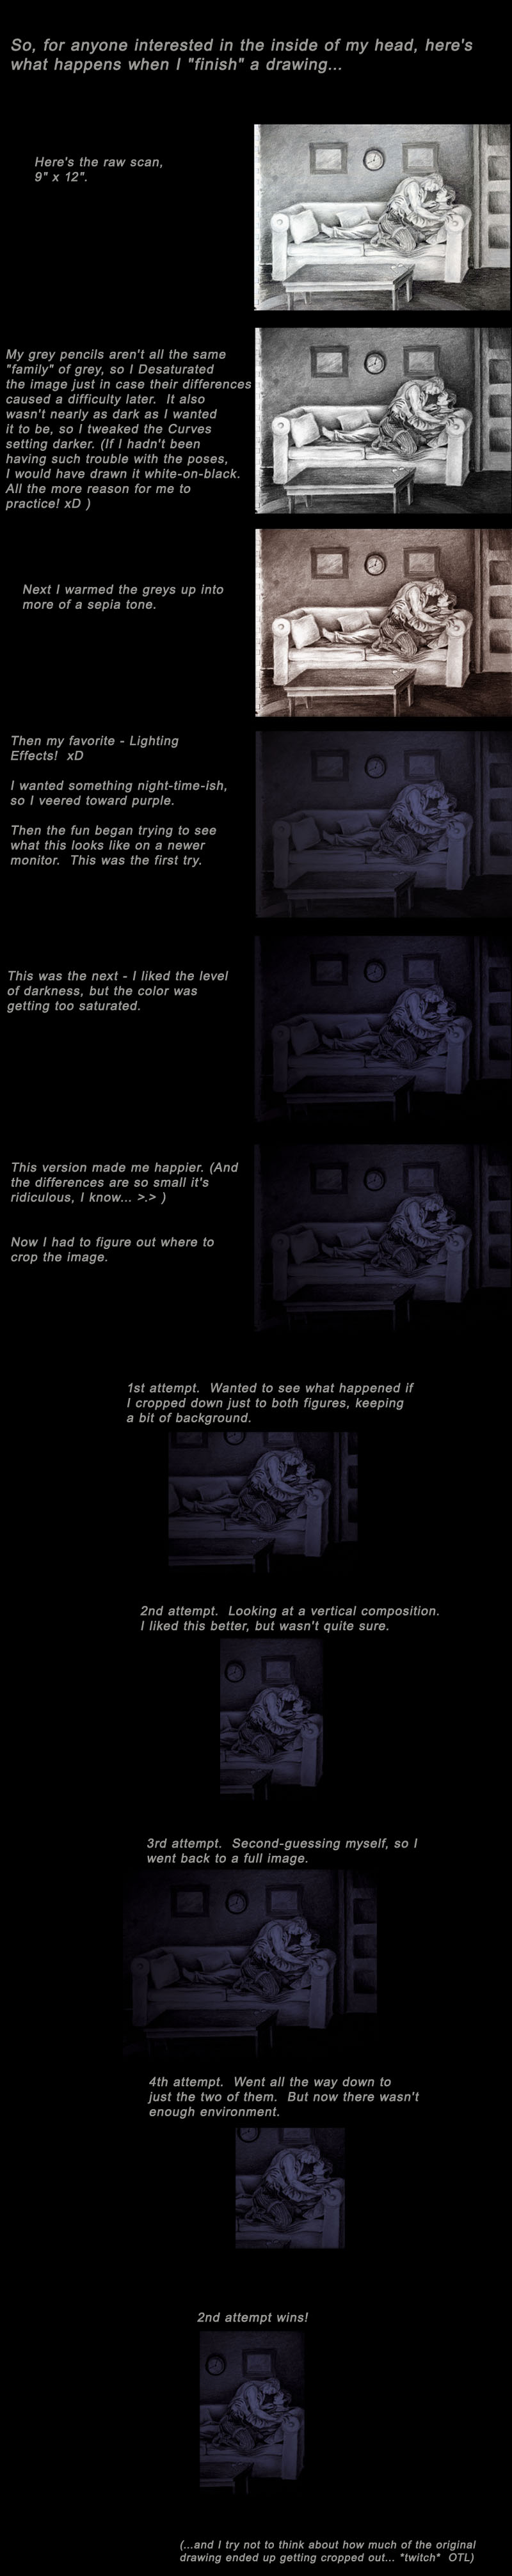 Process: 'Try' by FugueState